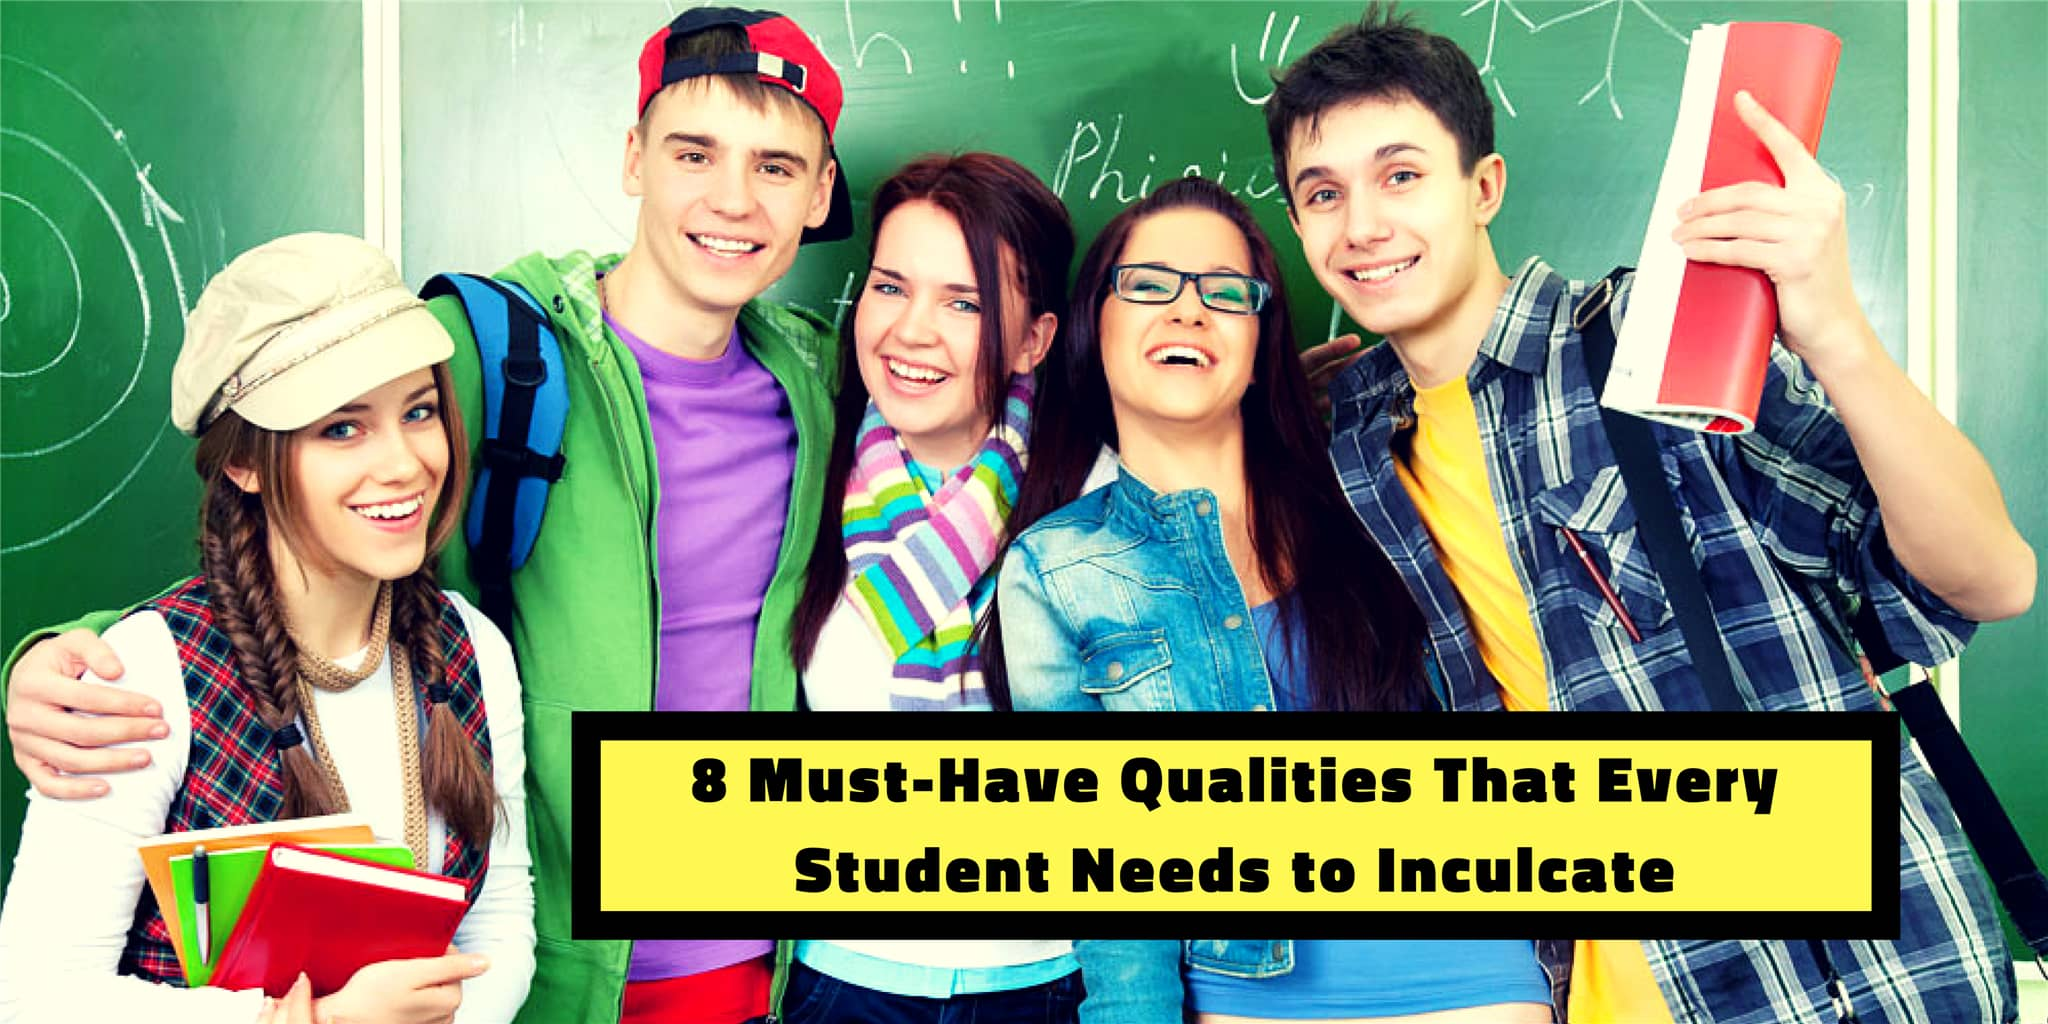 8 Must-Have Qualities That Every Student Needs to Inculcate